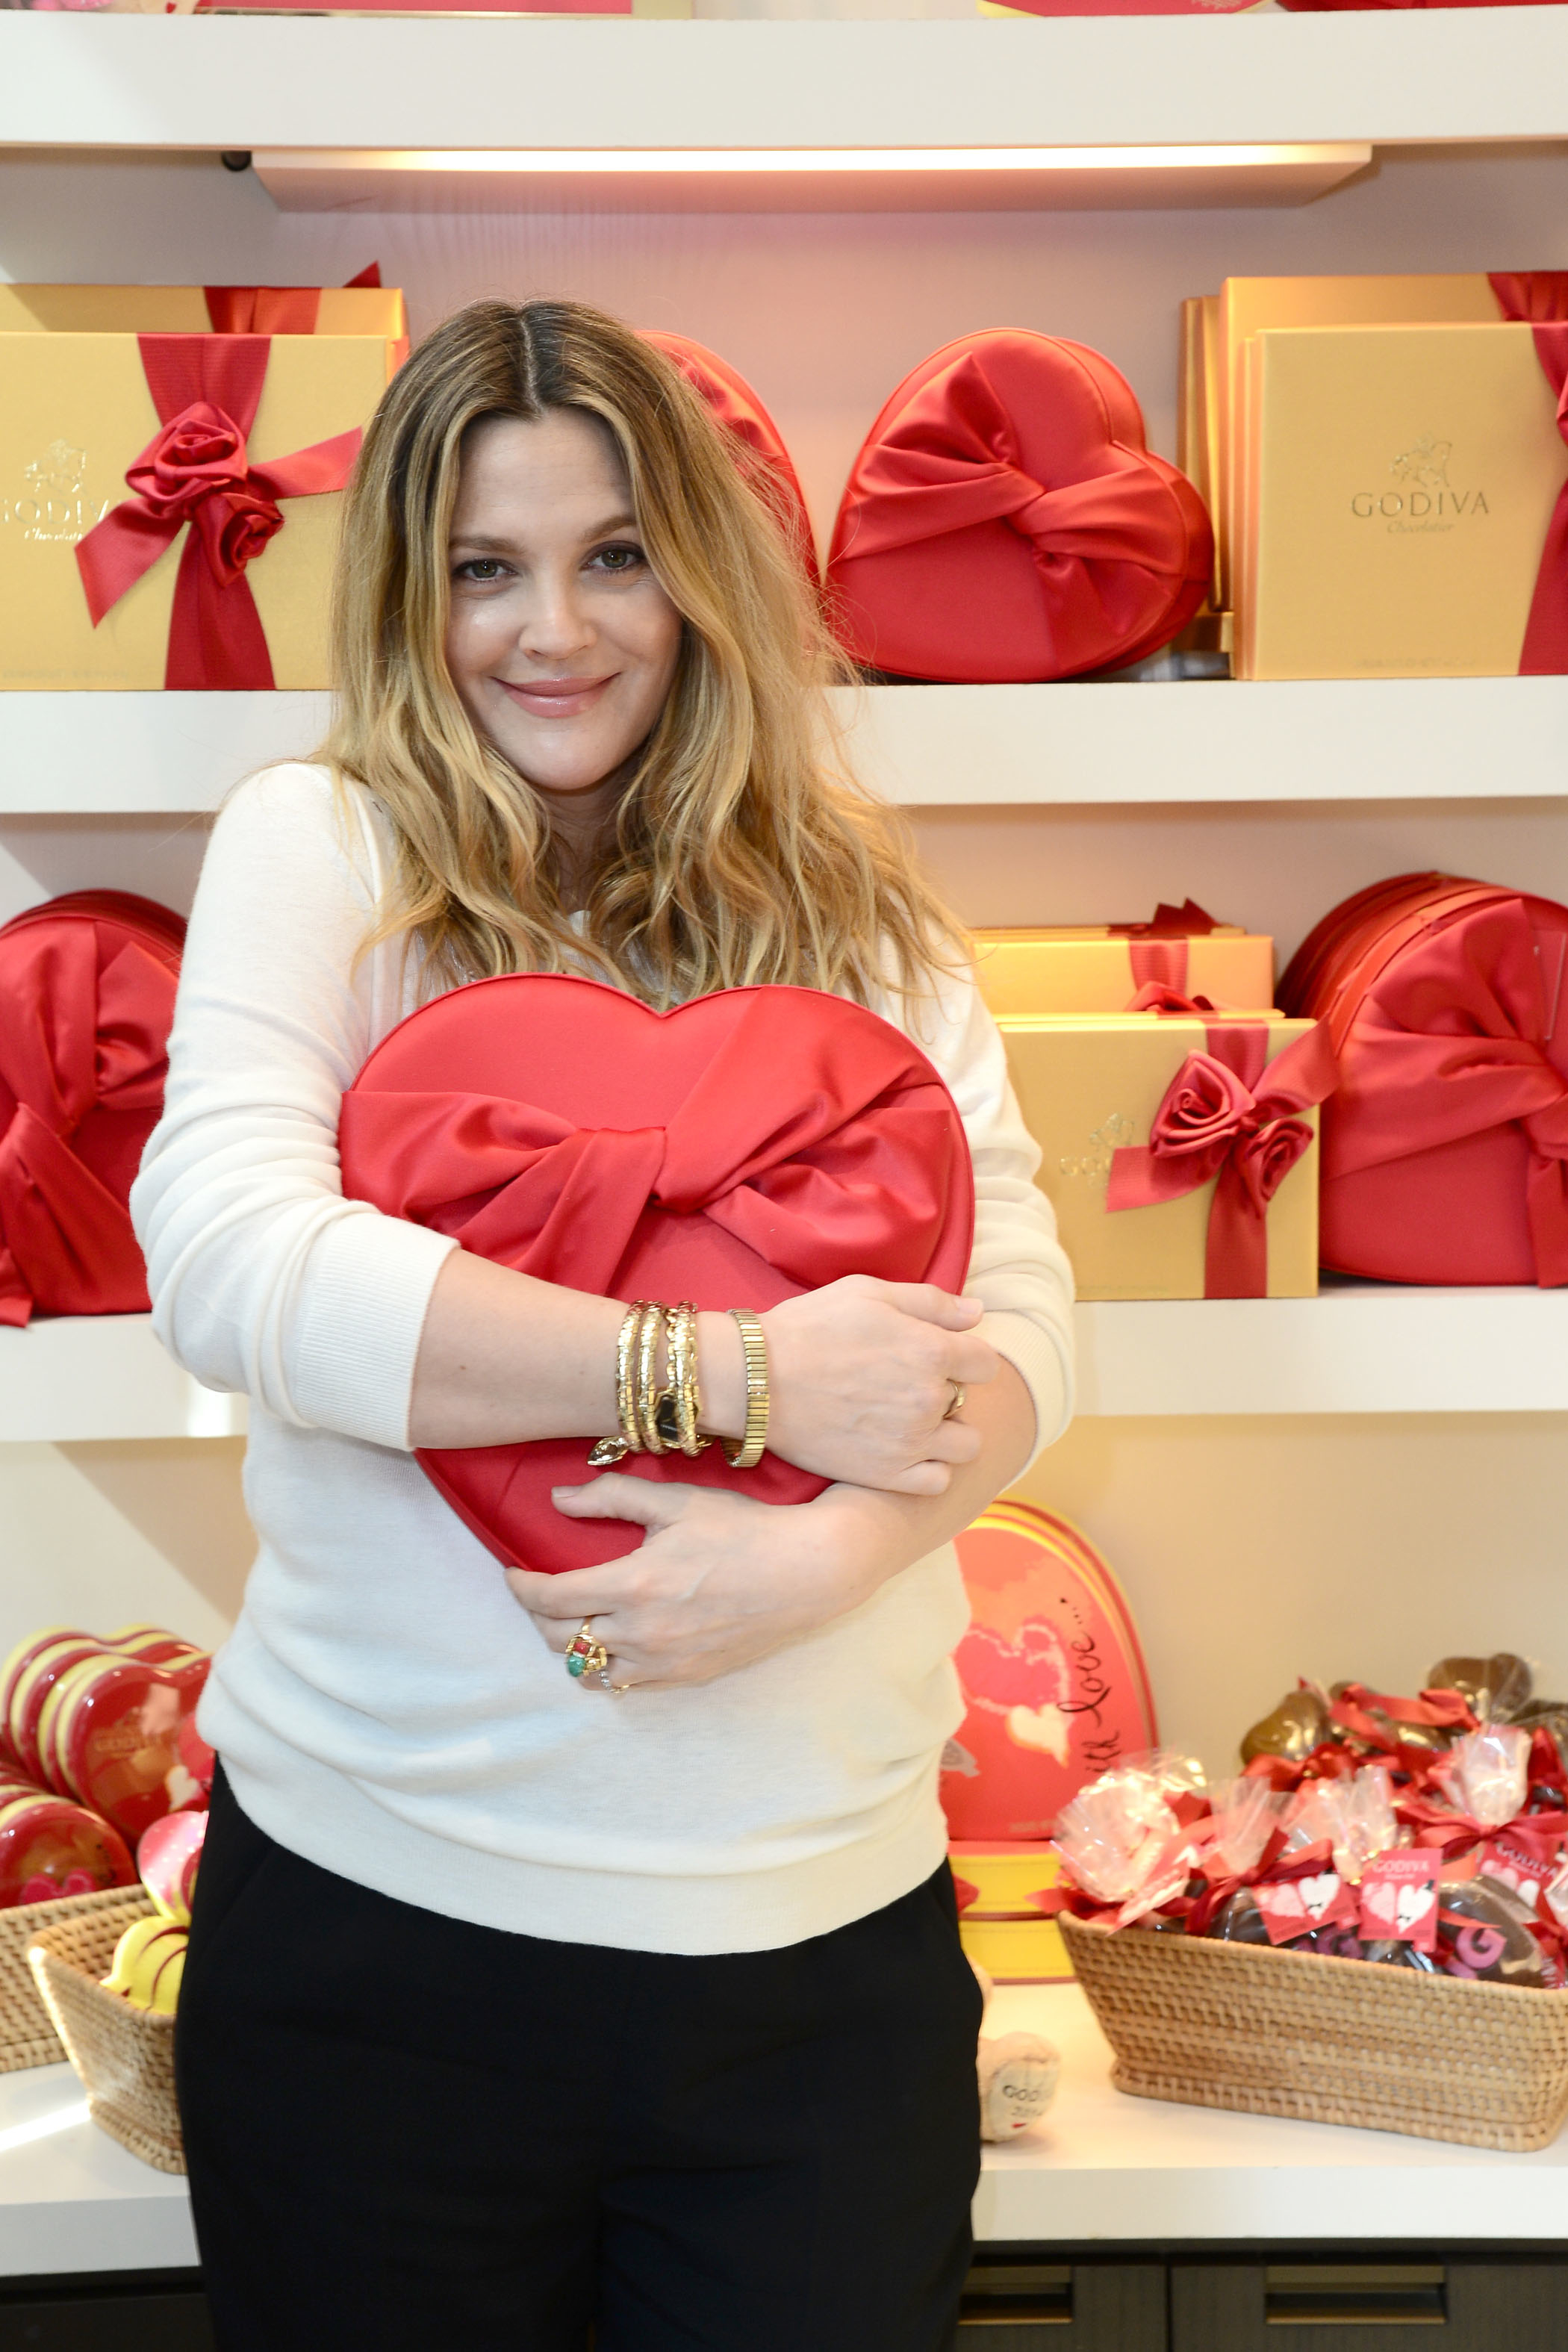 Drew Barrymore Stops by GODIVA To Kick-Off Valentine`s Day Partnership For Her Book Find It In Everything